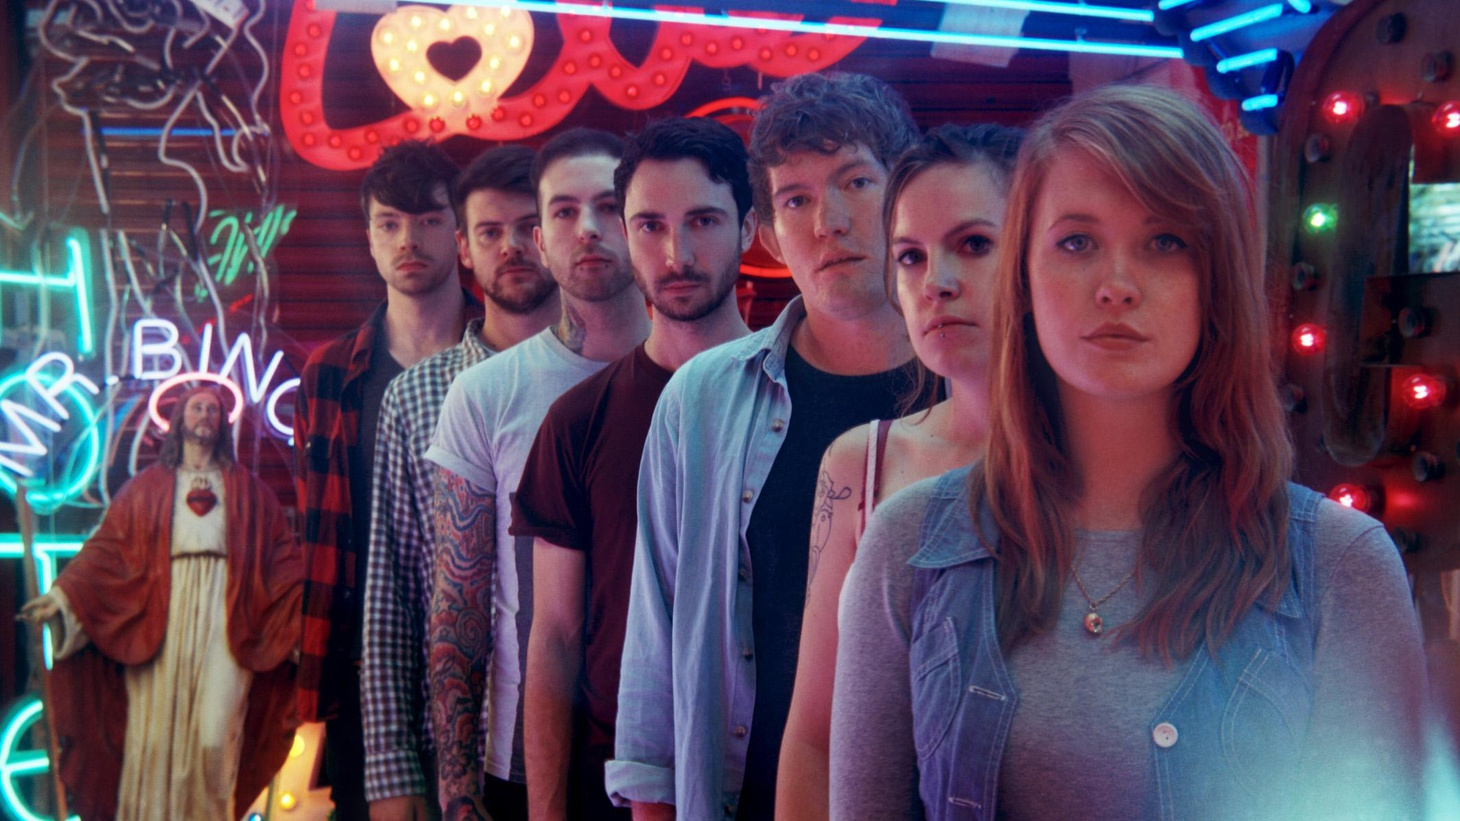 Los Campesinos! are a collective from Wales who specialize in catchy indie pop, even when they're singing breakup songs...